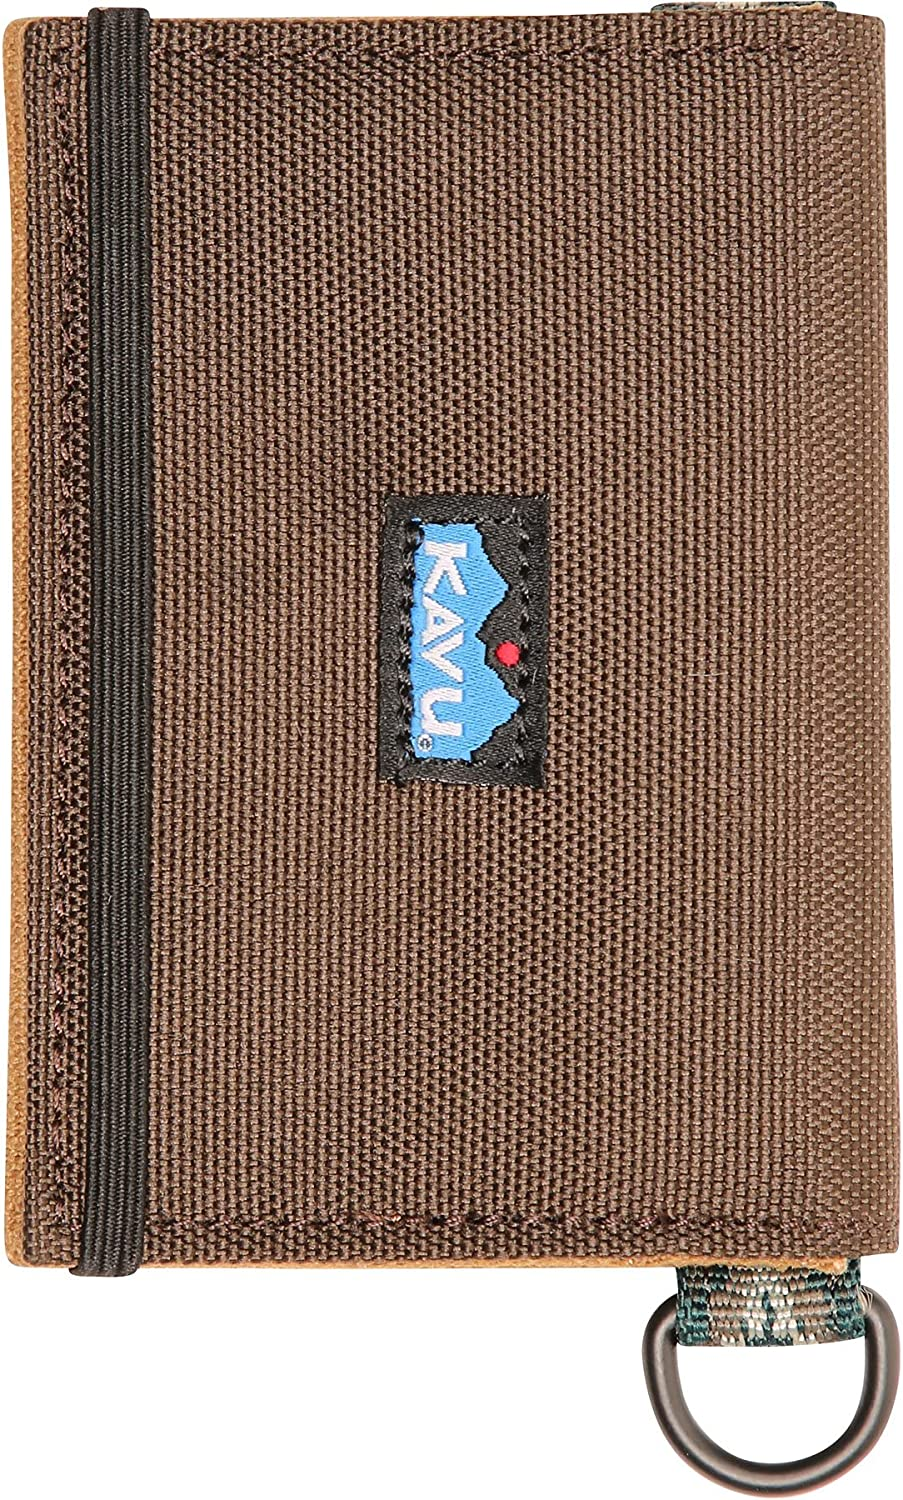 KAVU Billings Bifold Wallet with Coin Pocket and Key Ring